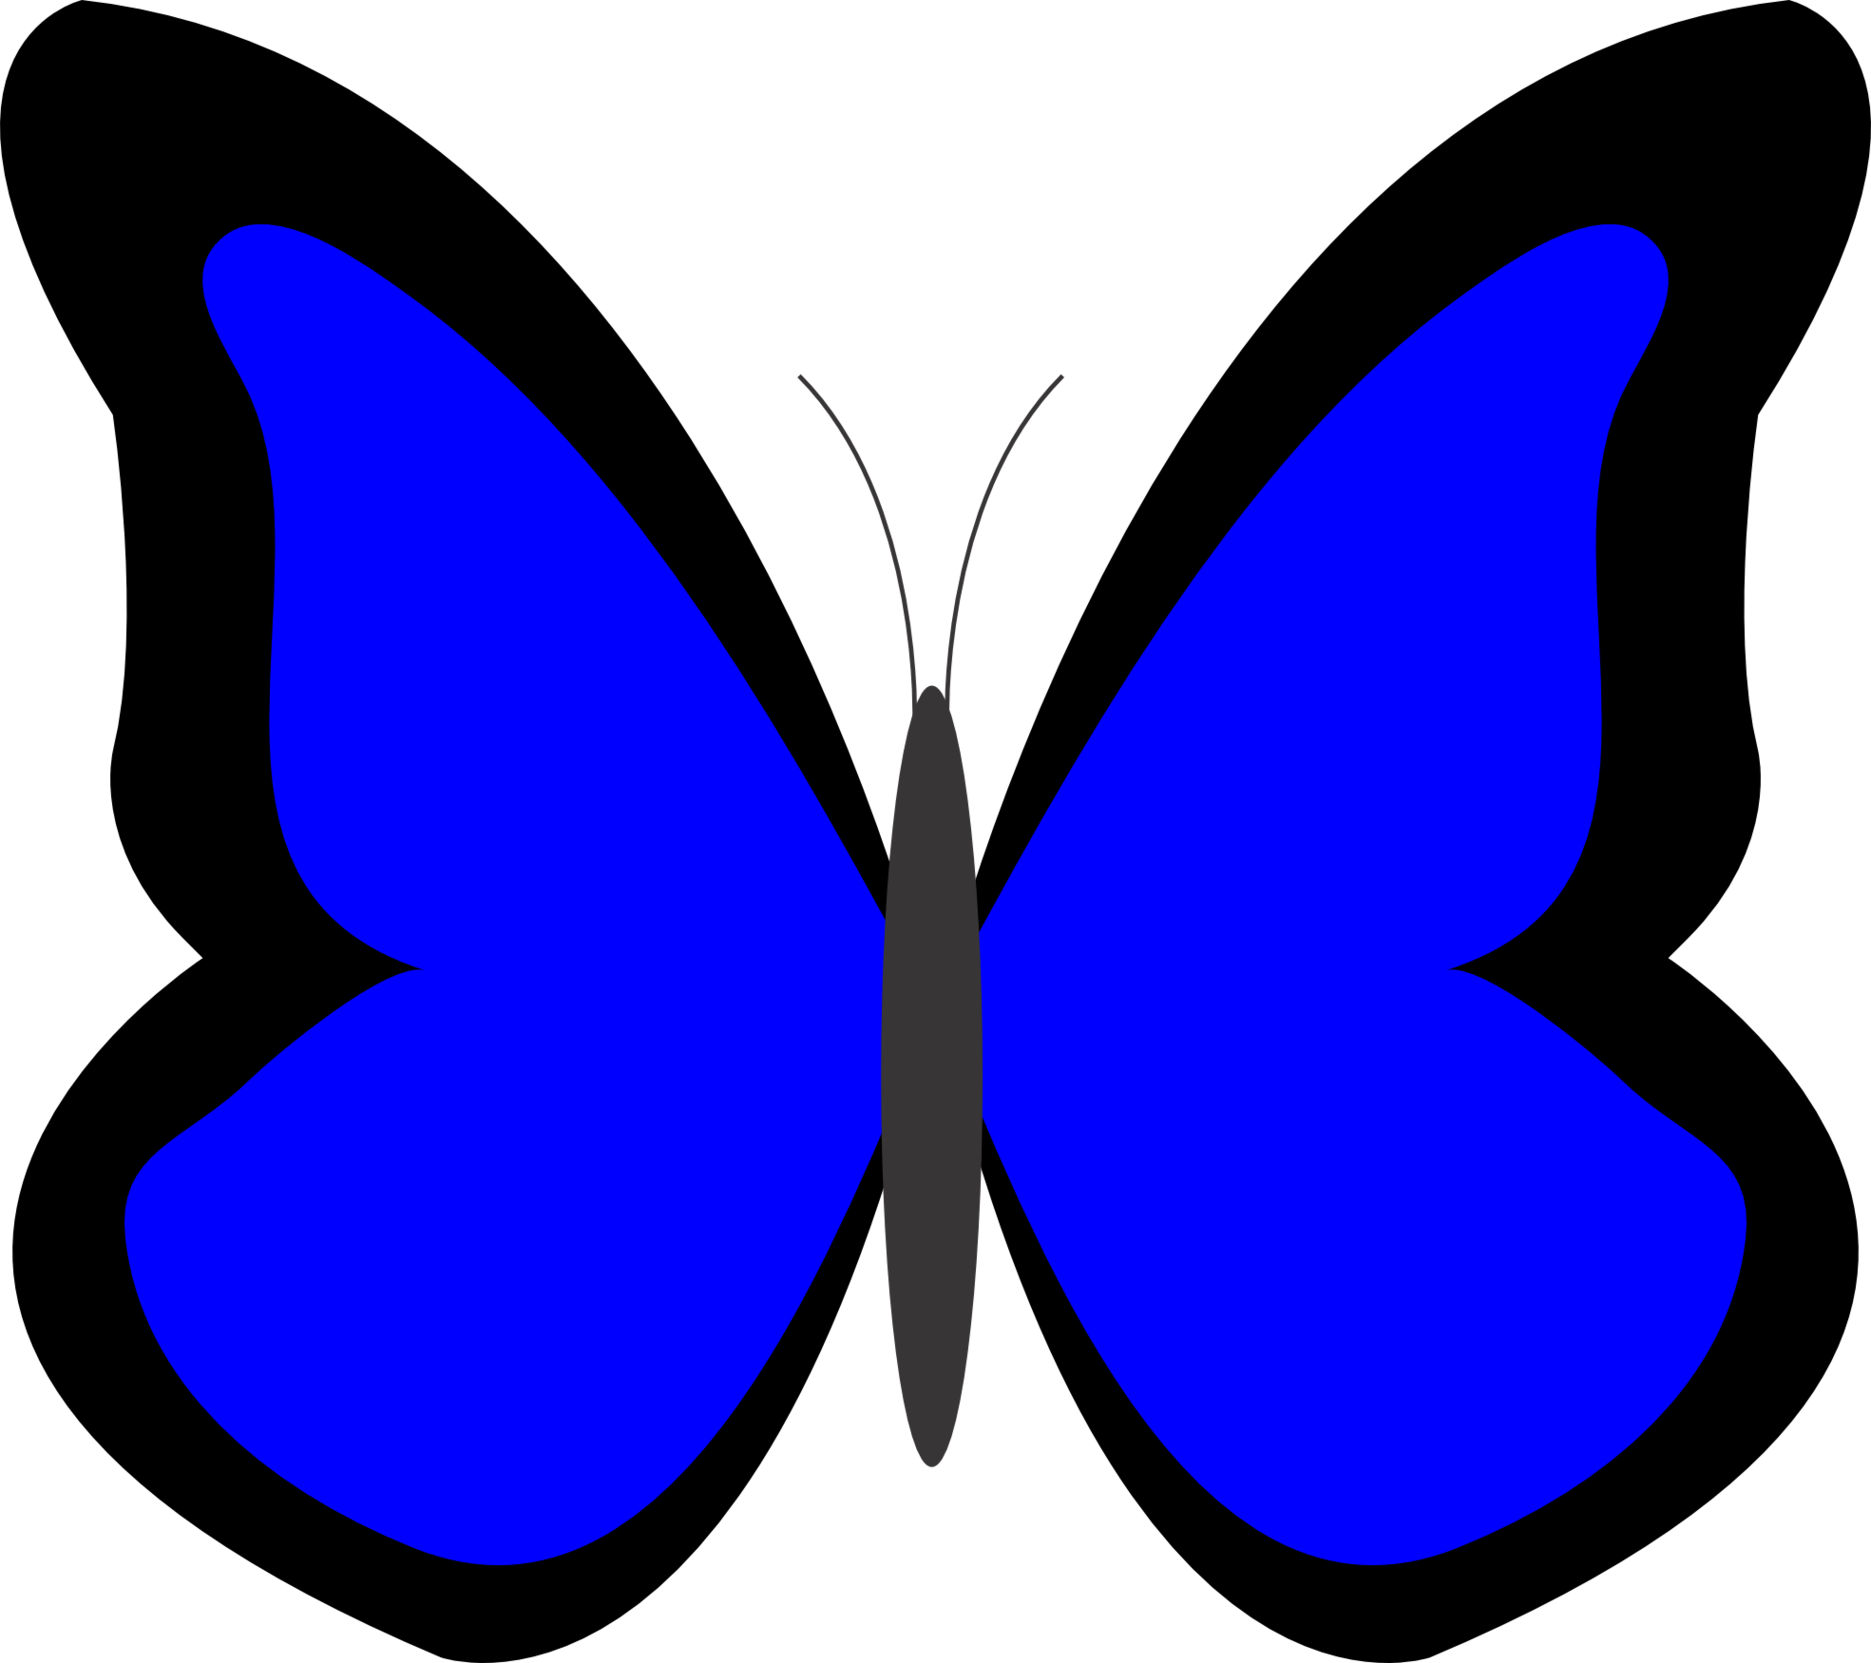 Top butterfly clipart free image 3